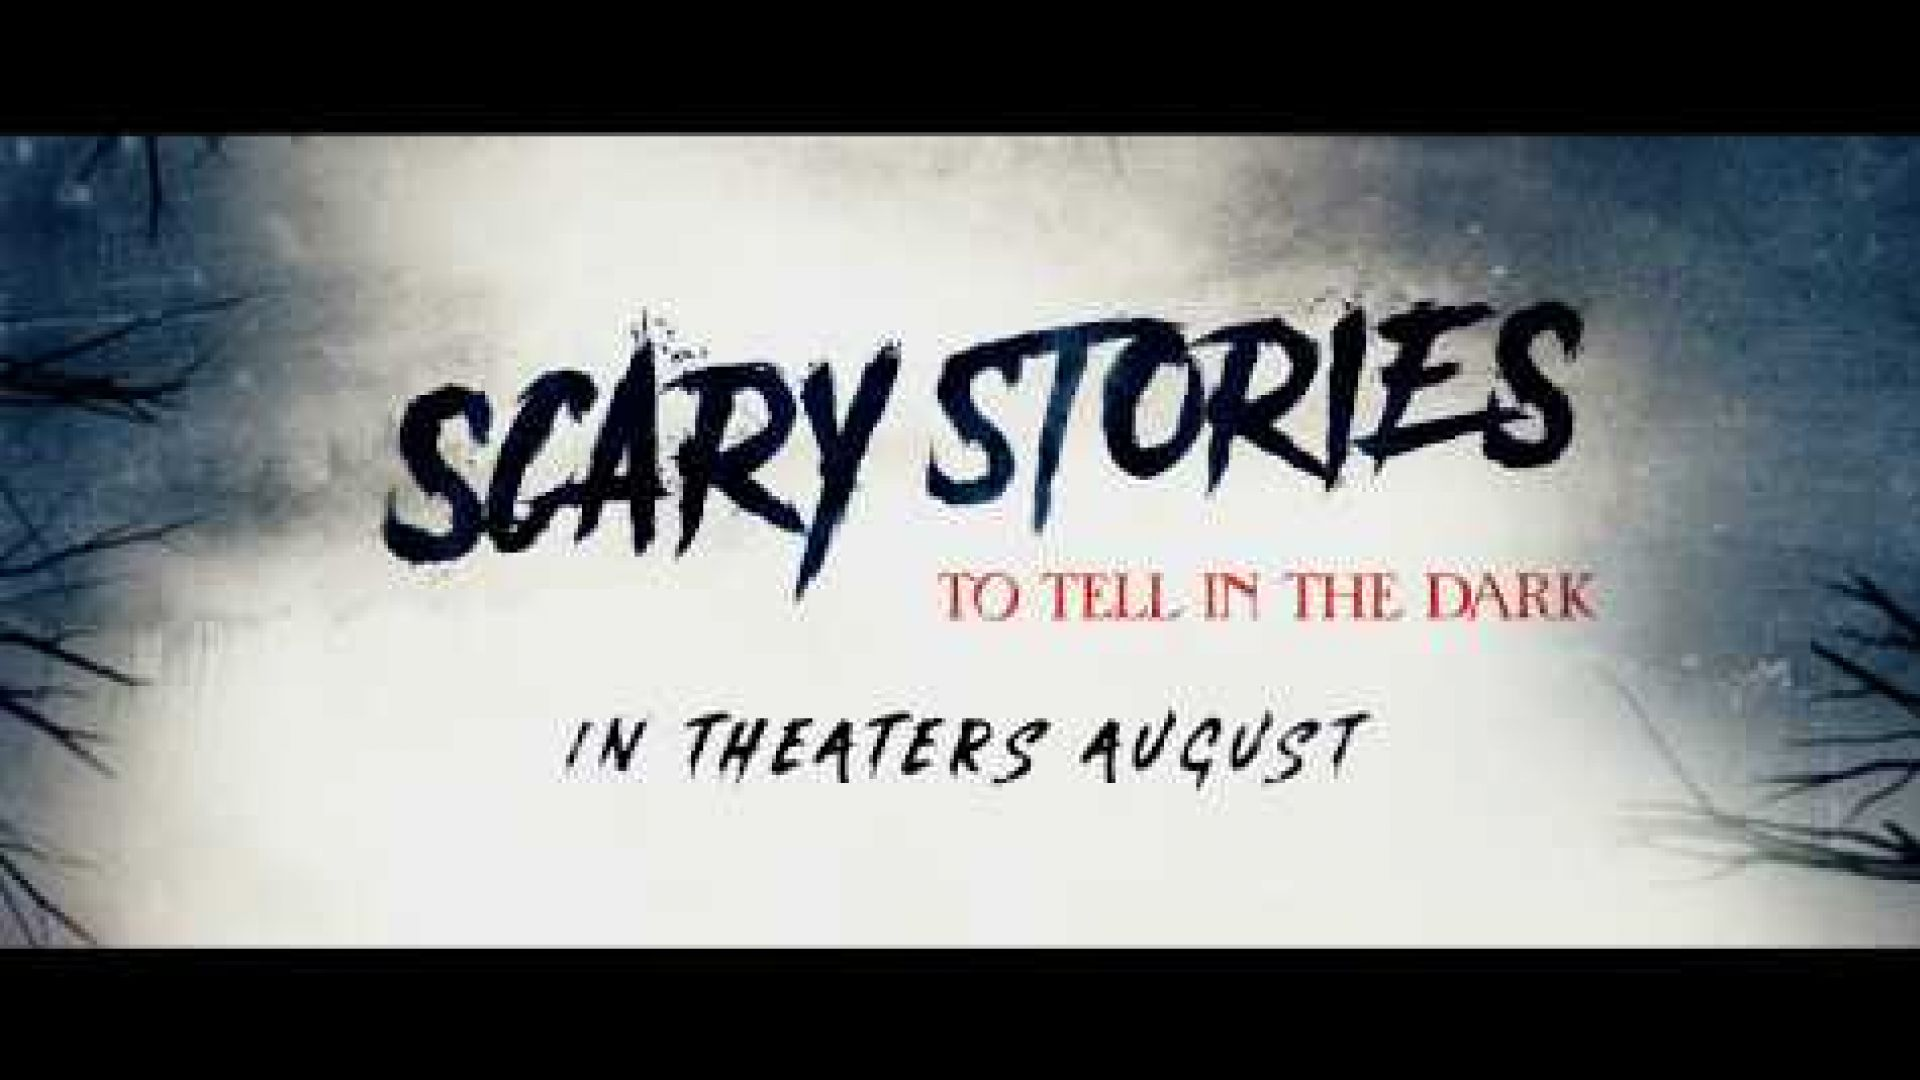 'Scary Stories To Tell In The Dark' - Big Toe